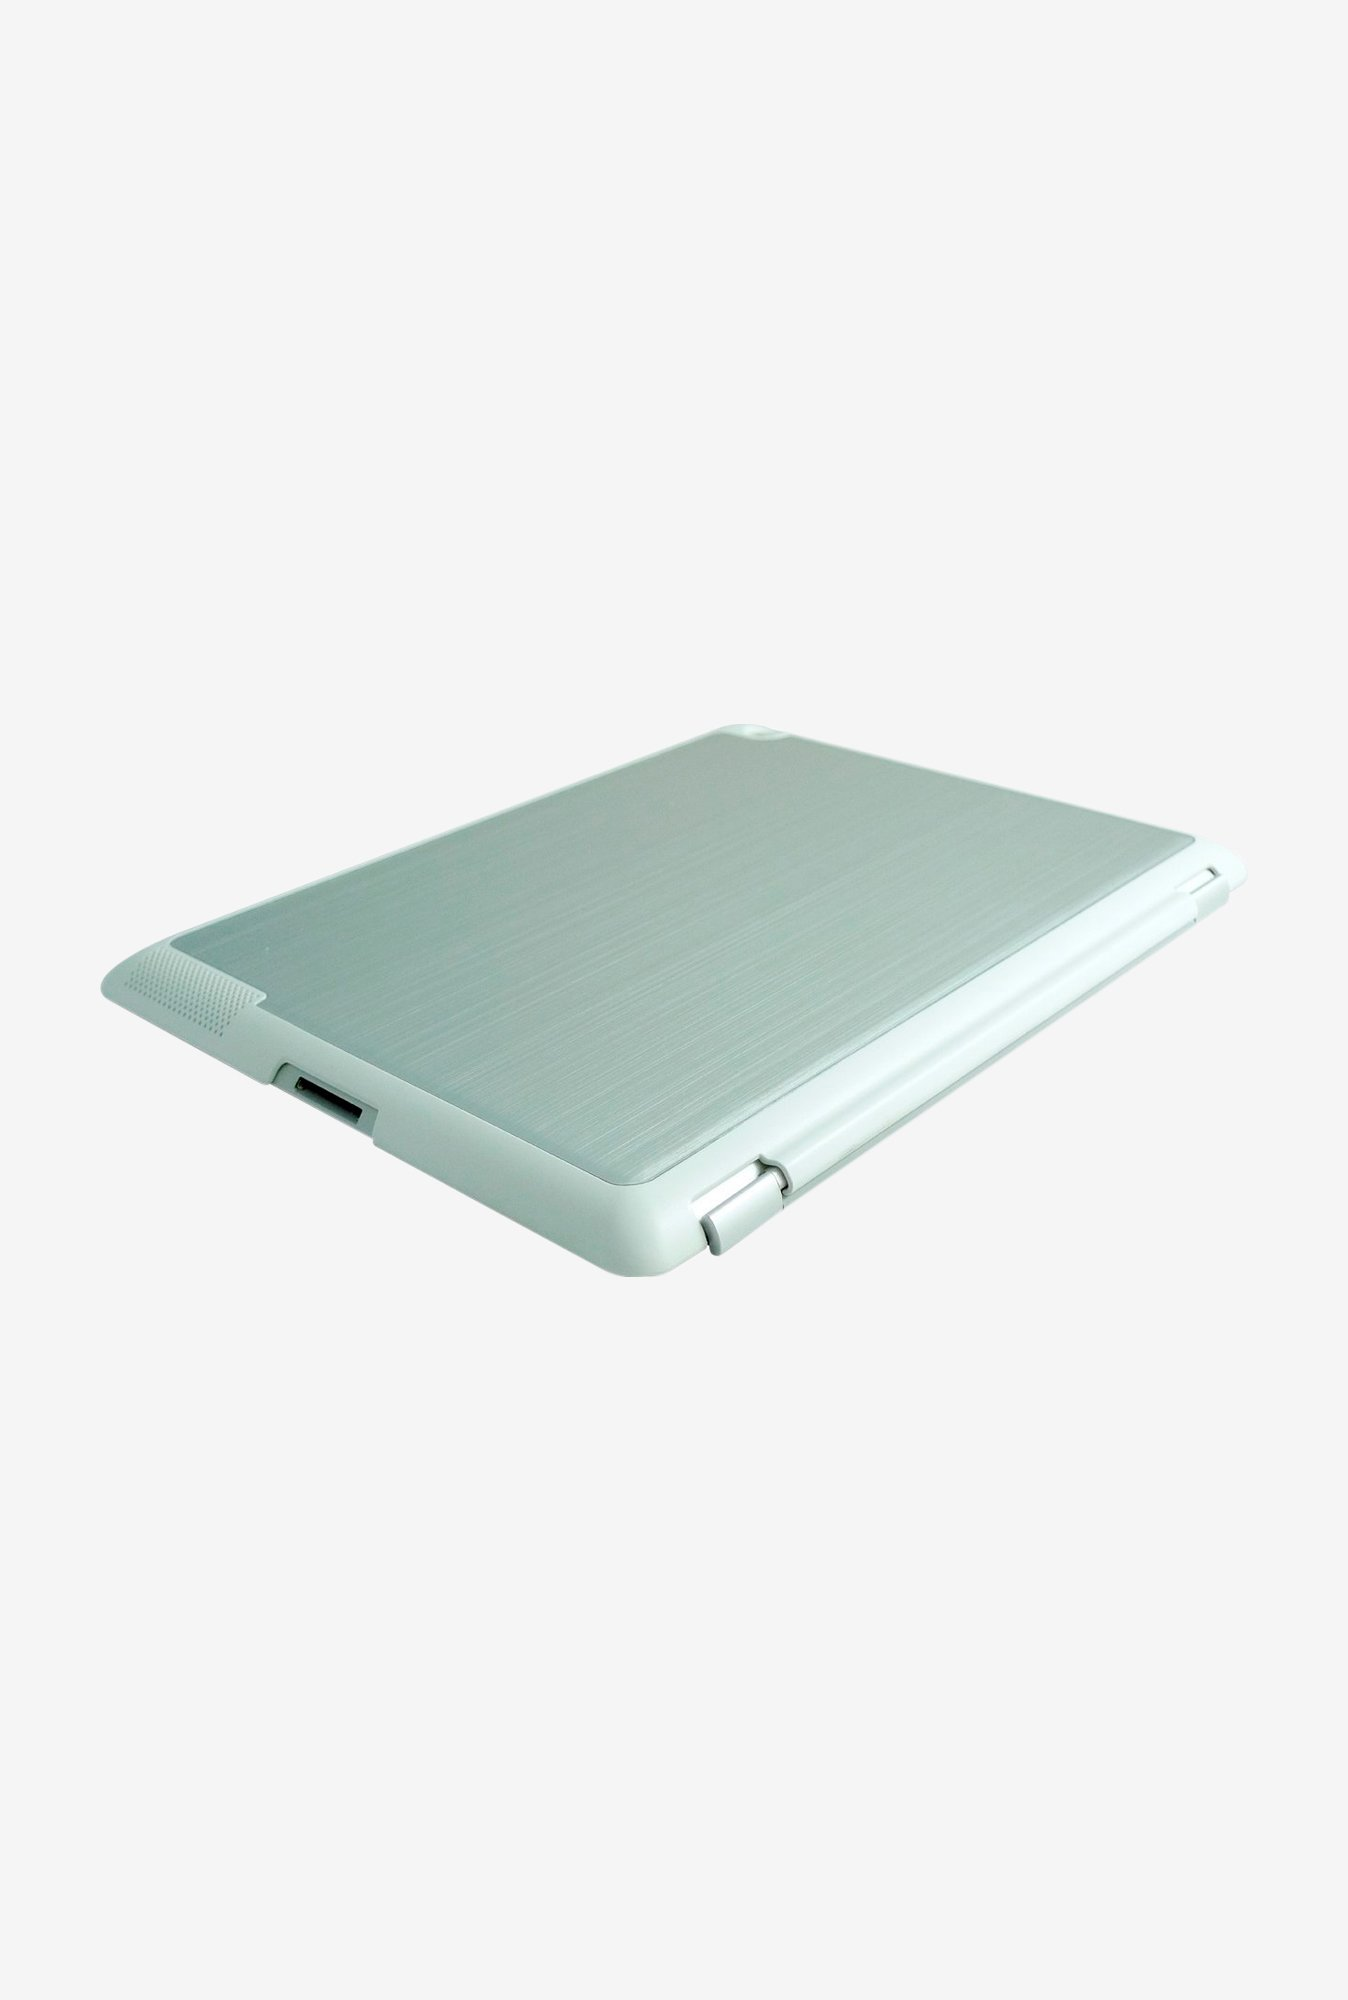 Gosh Complement+ A40 iPad Case Silver